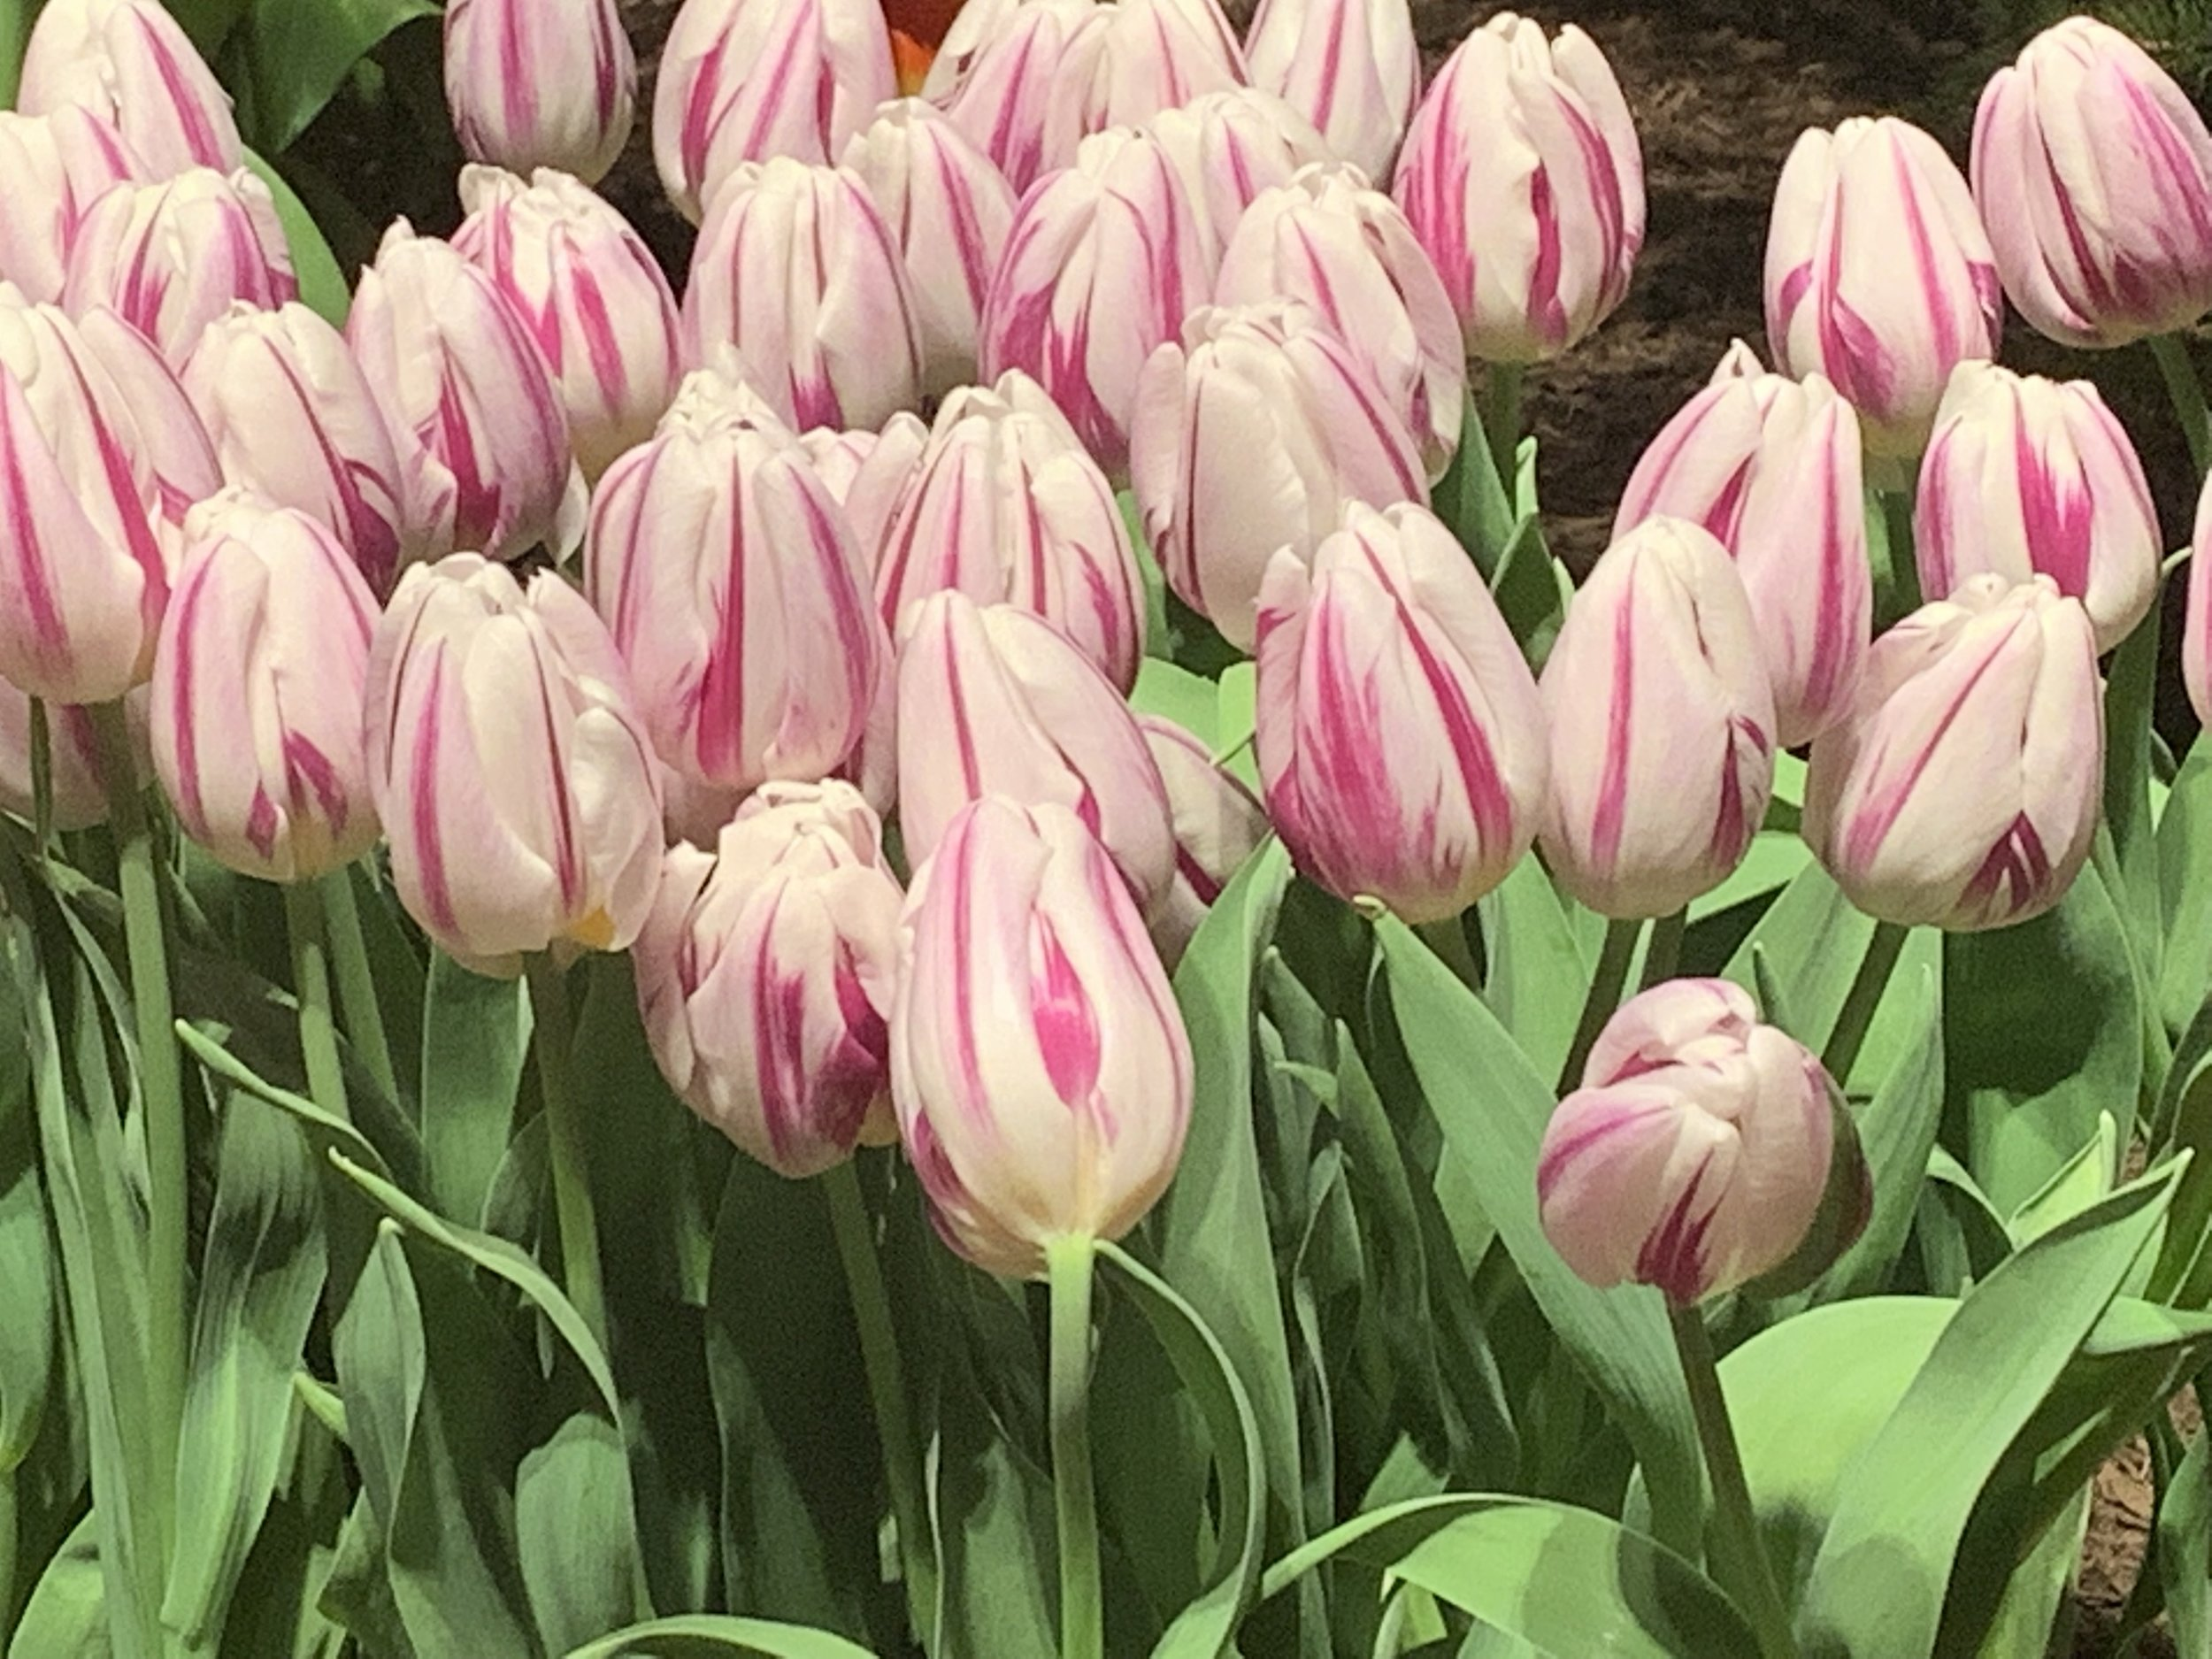 Pink tulips are my favorite spring flower. Seeing them annually at the Chicago Flower & Garden Show makes me smile.